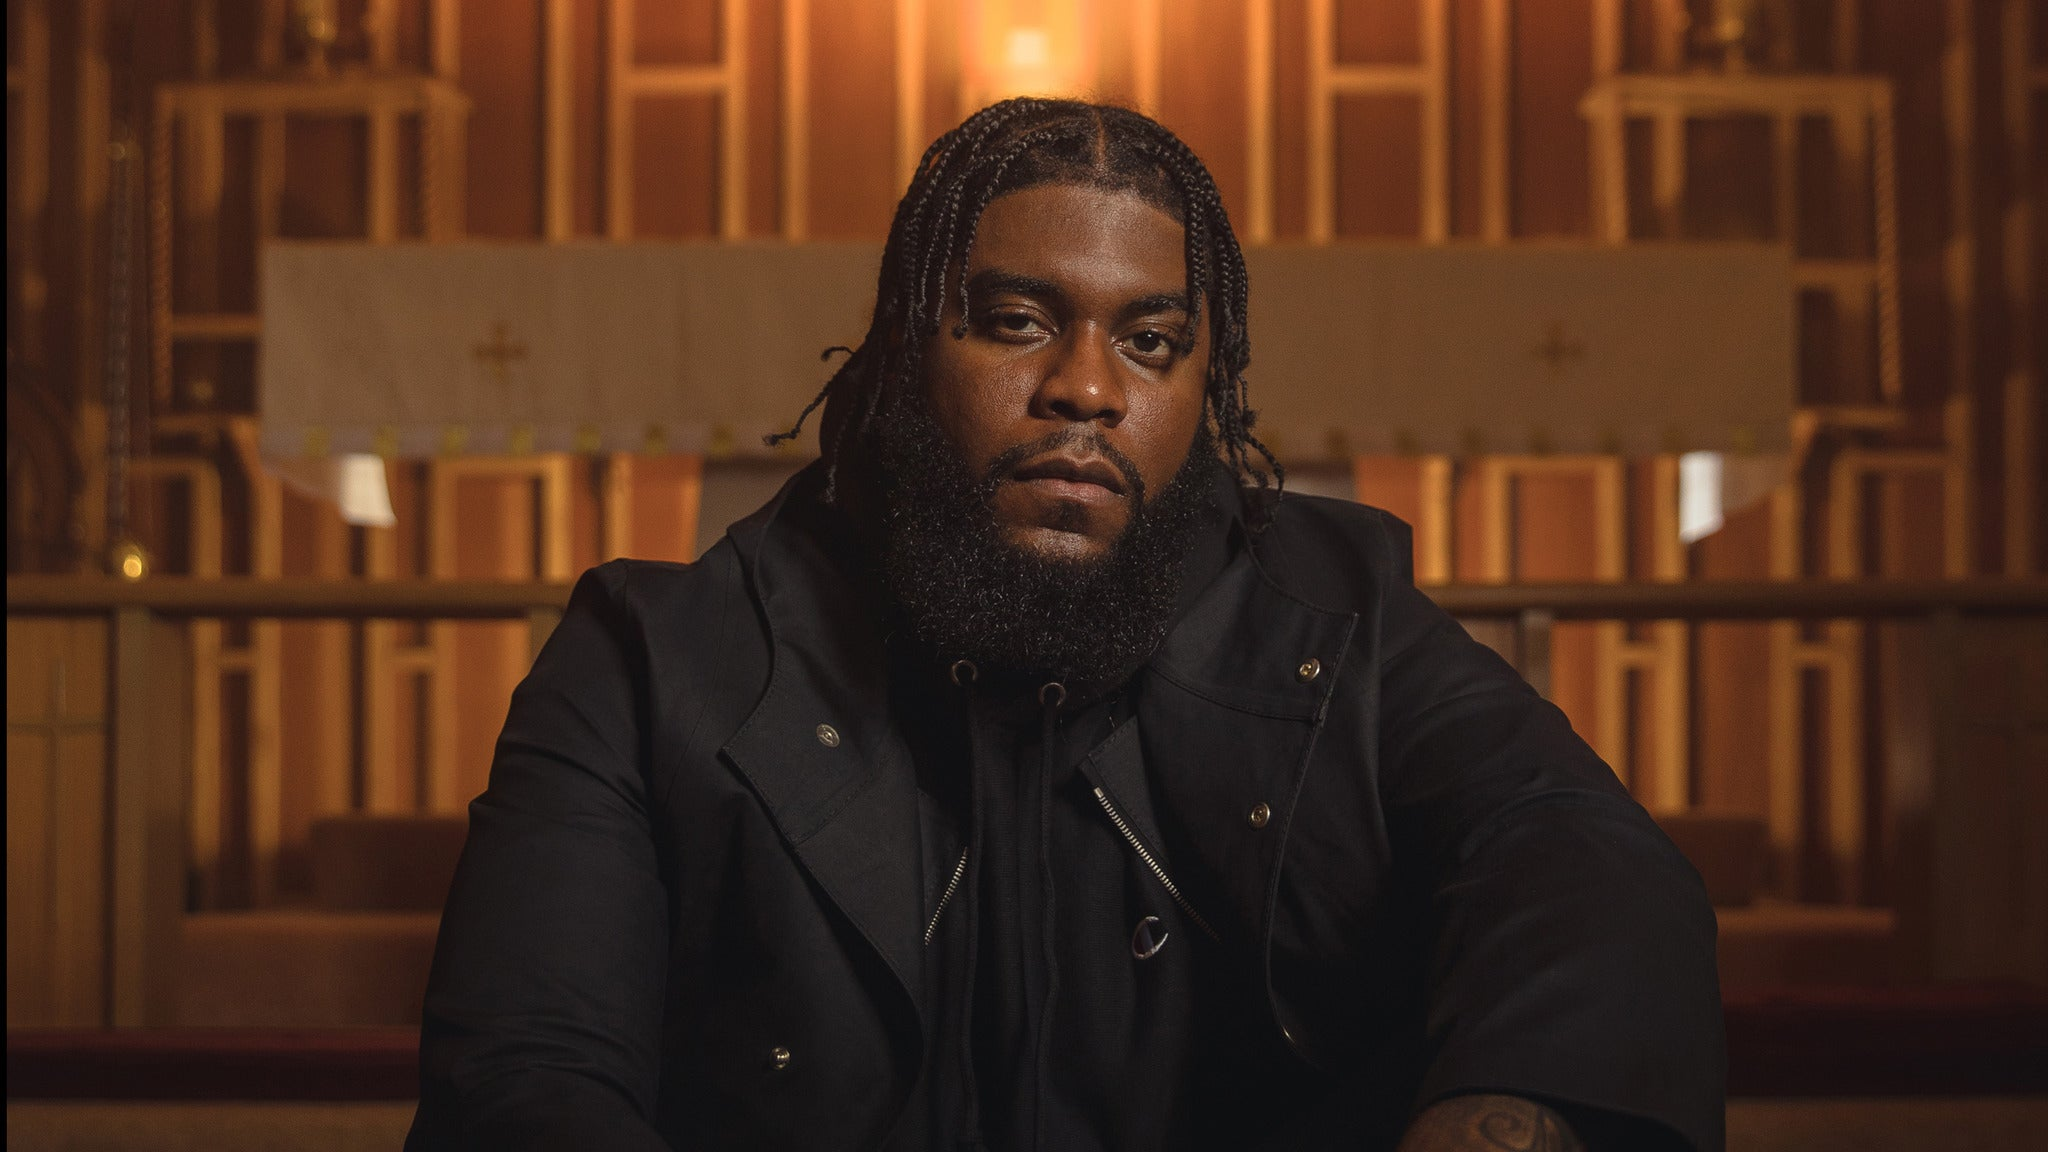 Big K.R.I.T. at The Observatory - Santa Ana